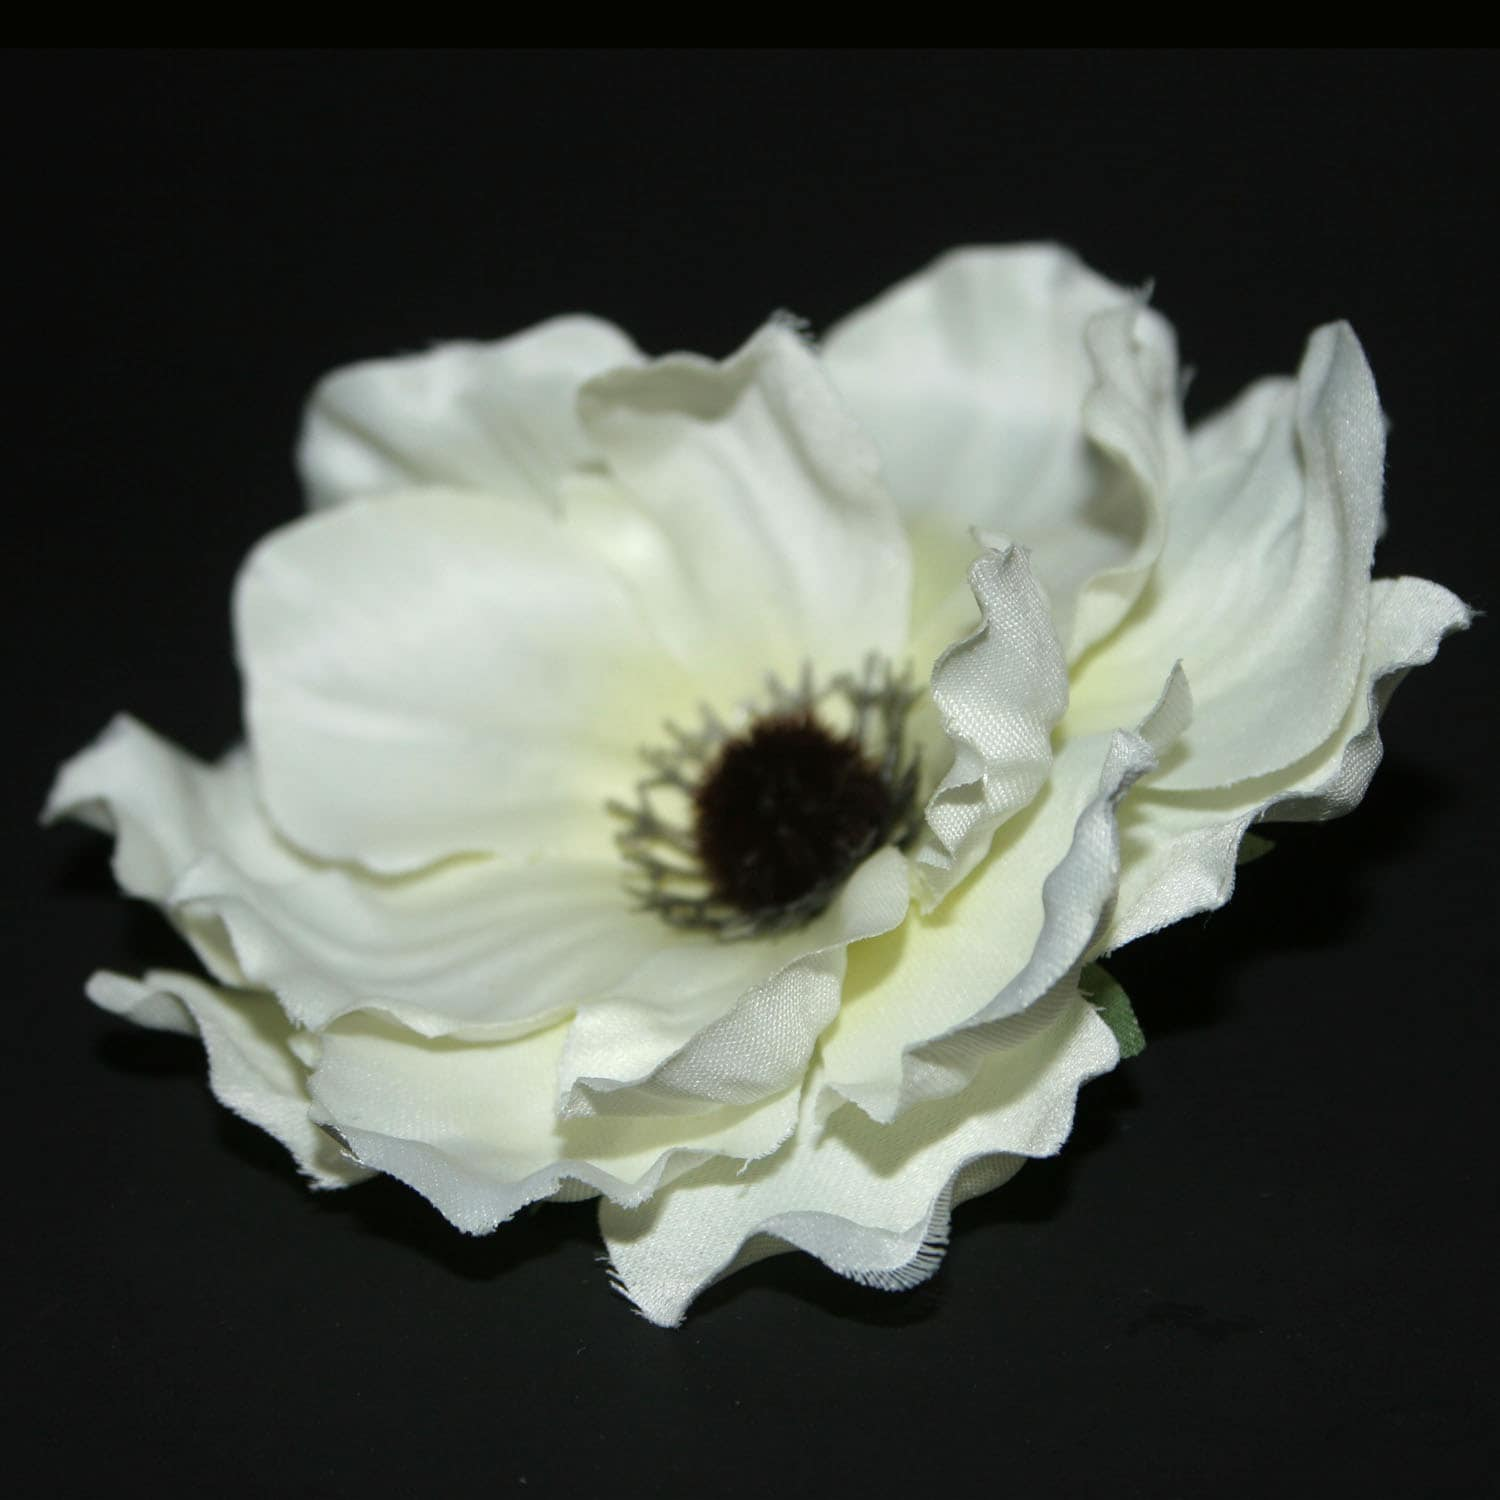 Black and white anemone silk flowers image collections flower black and white anemone silk flowers choice image flower black and white anemone silk flowers images mightylinksfo